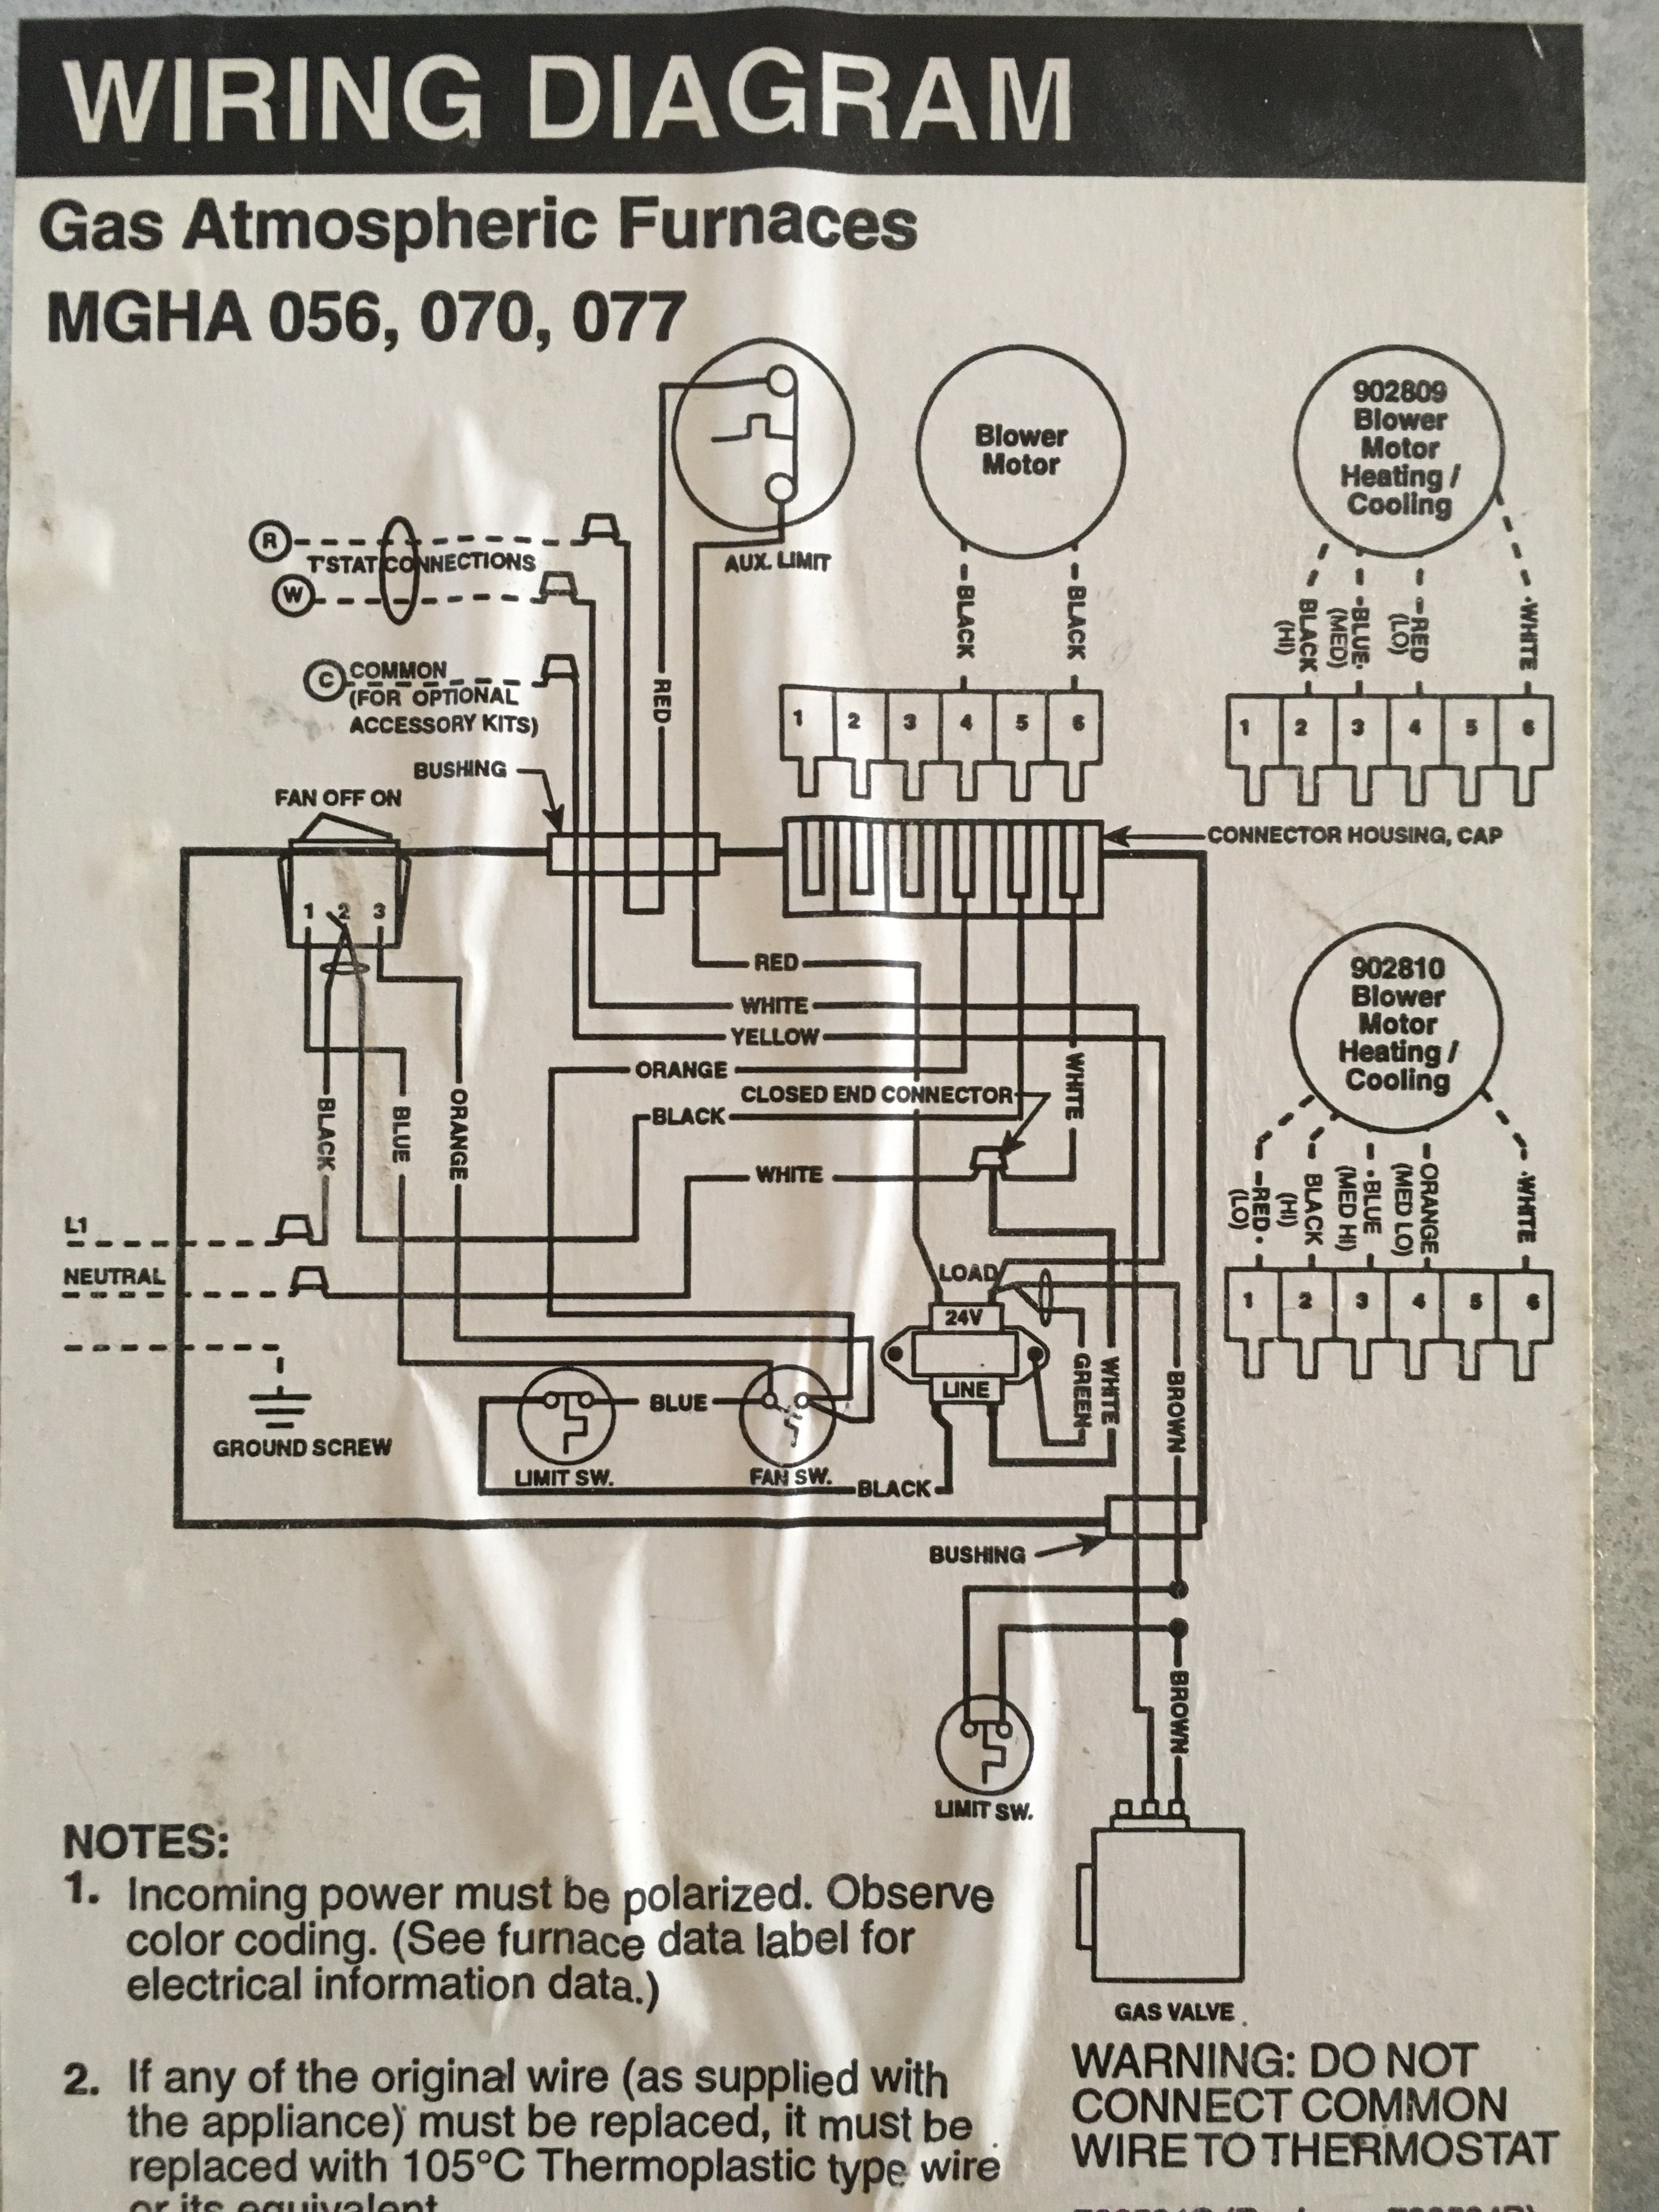 BWDO] MGHA WIRING DIAGRAM [YSB40]   CABLE TEASE   CABLE TEASE ...